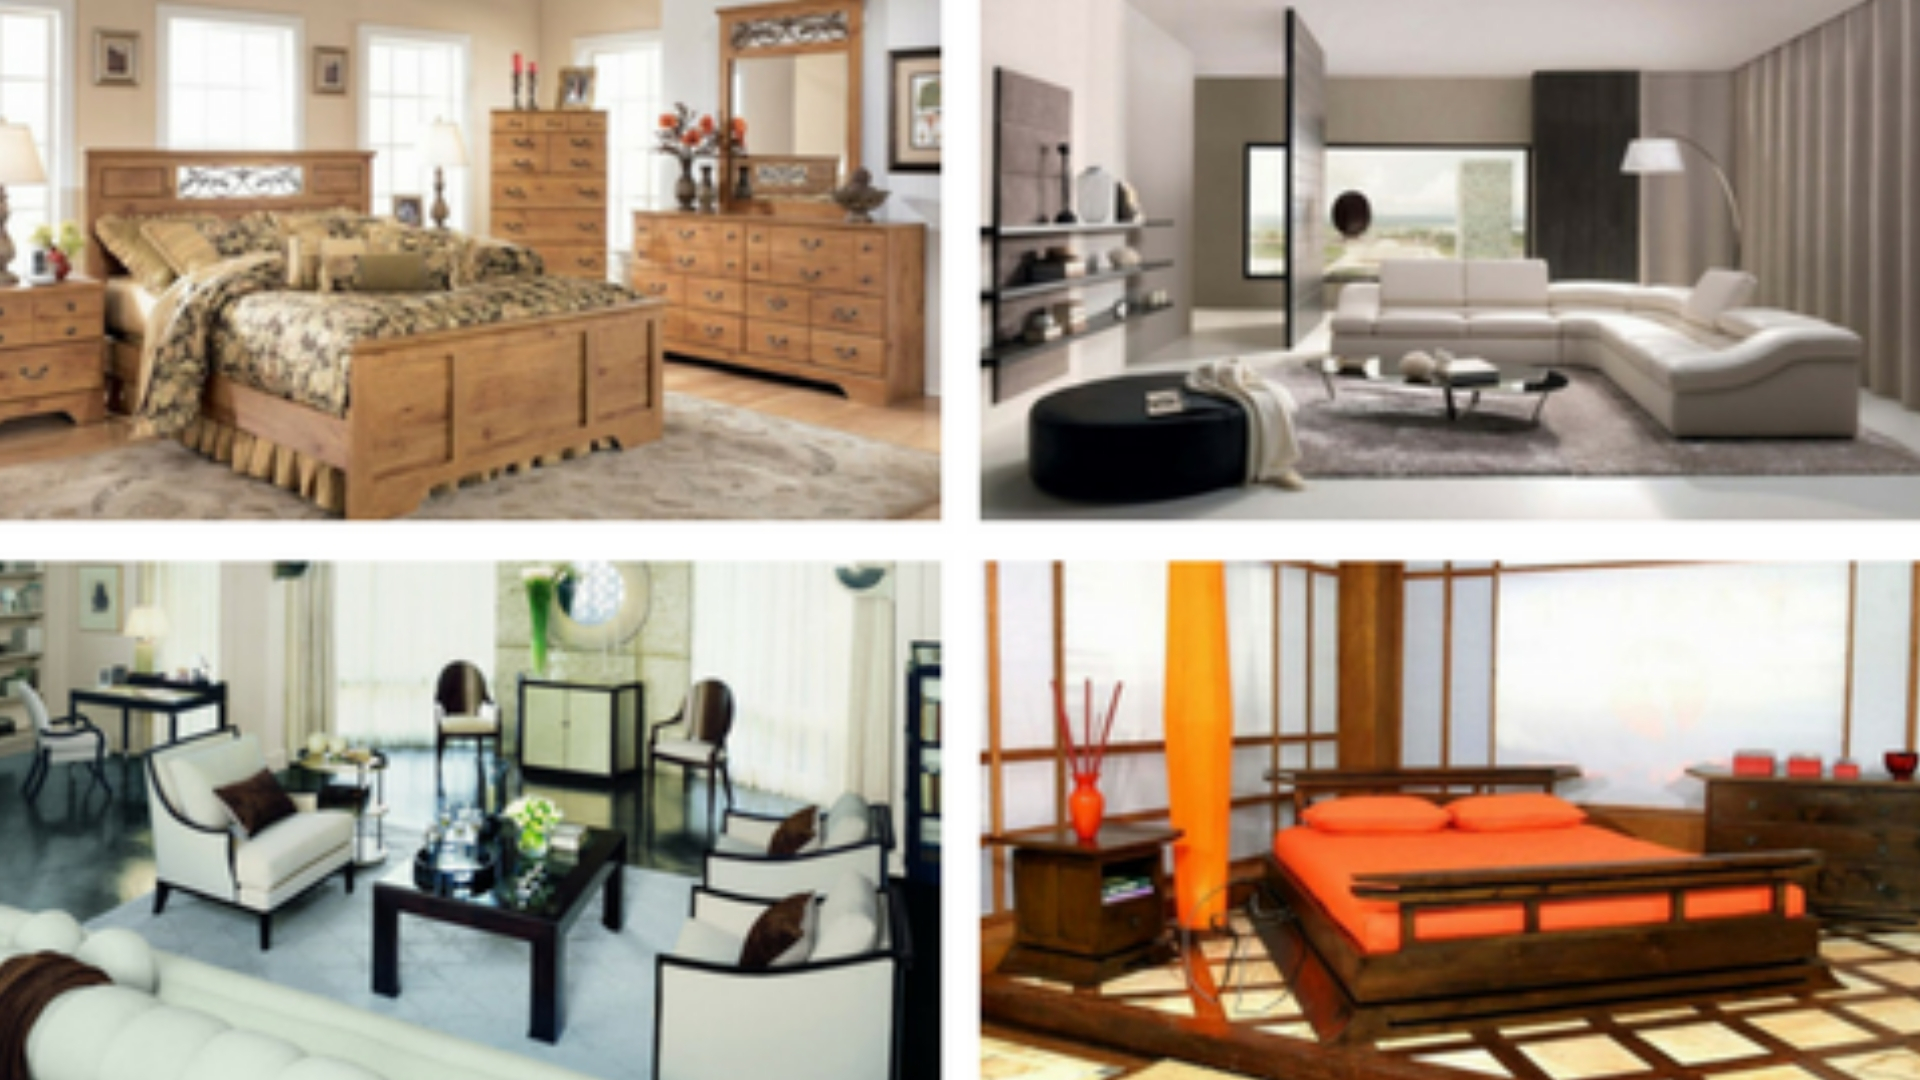 Simphome Home Design Furniture Idea to Match Interior Style